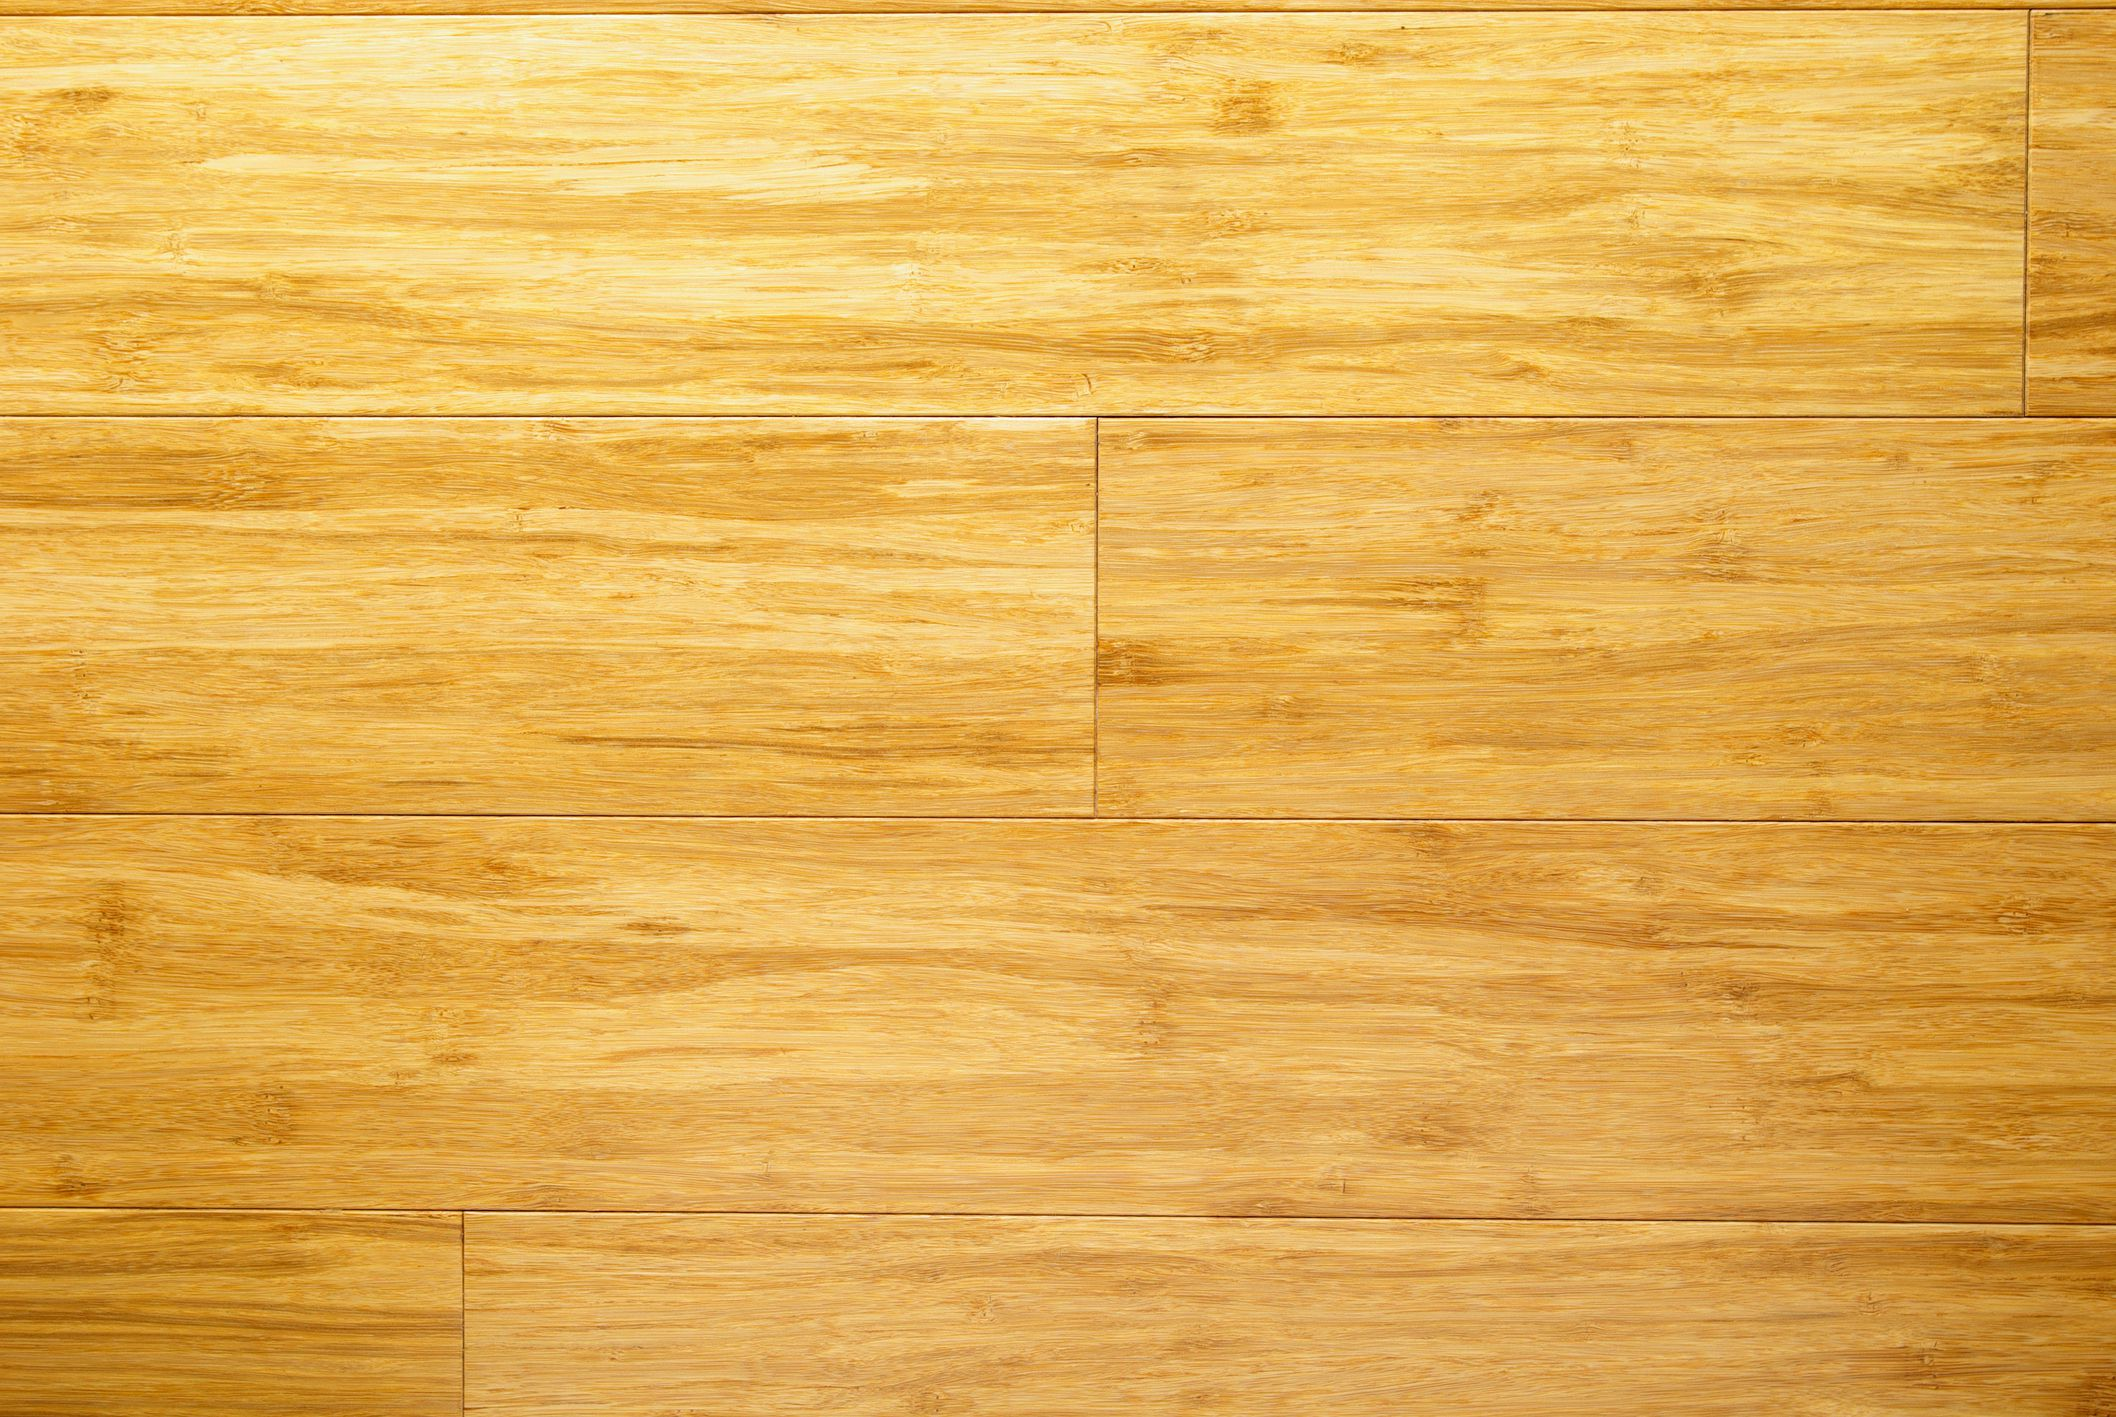 Guide To Using Bamboo Flooring In A Bathroom